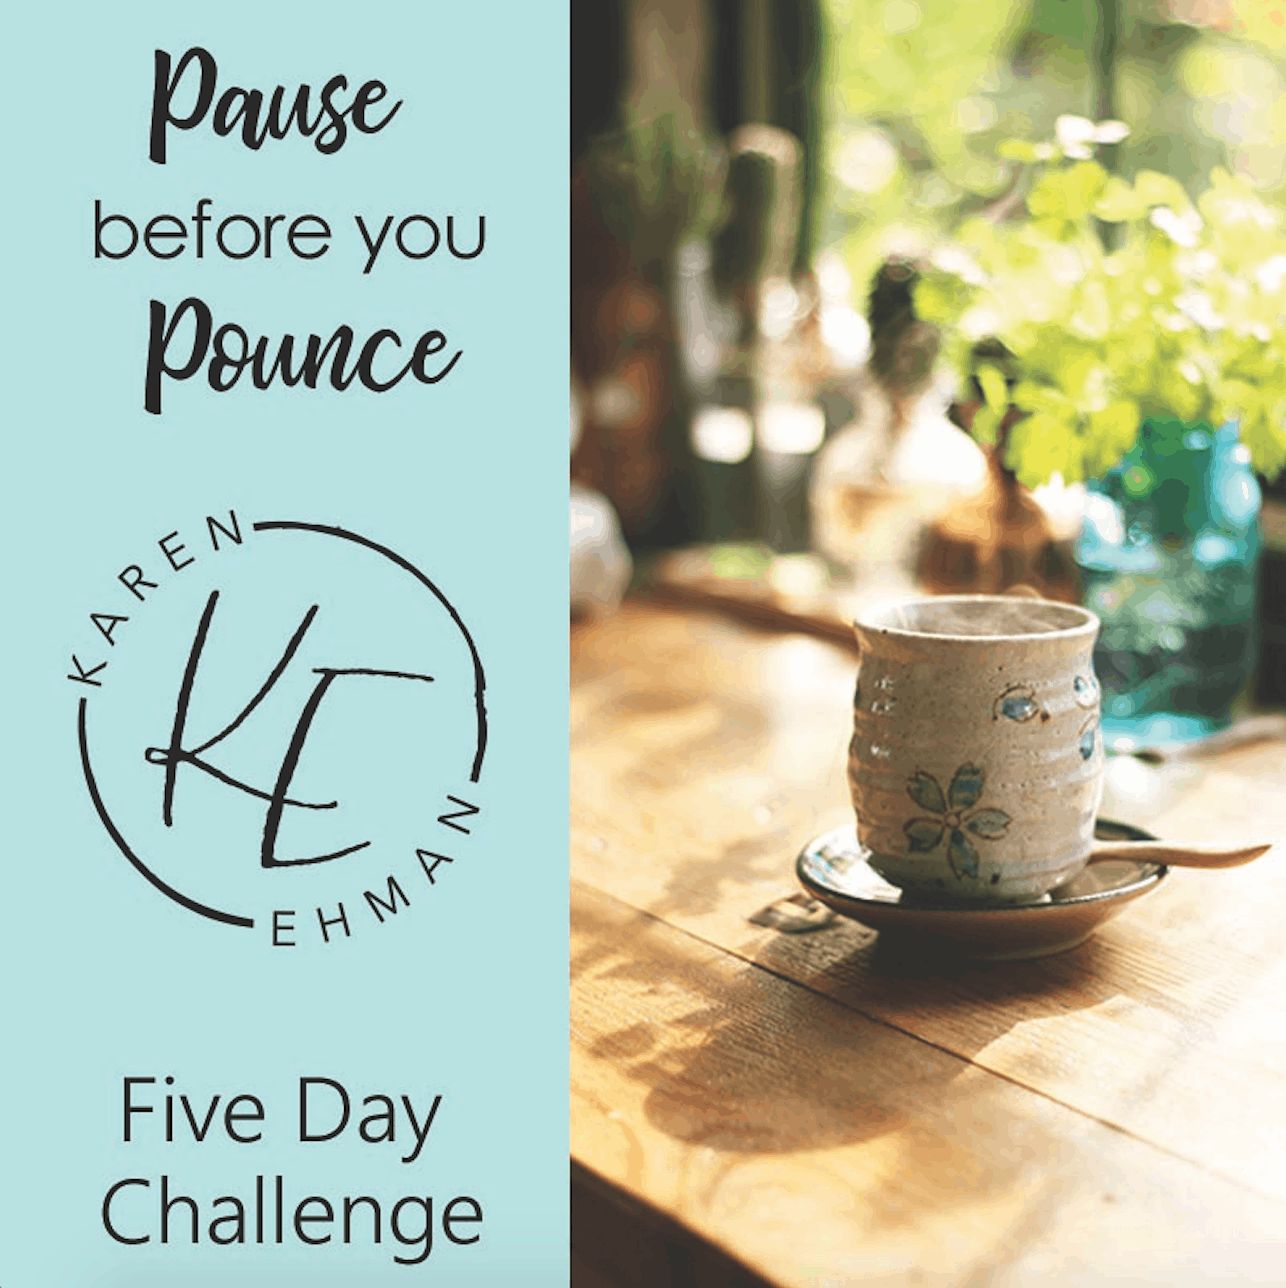 Pause Before You Pounce 5-Day Challenge at karenehman.com.